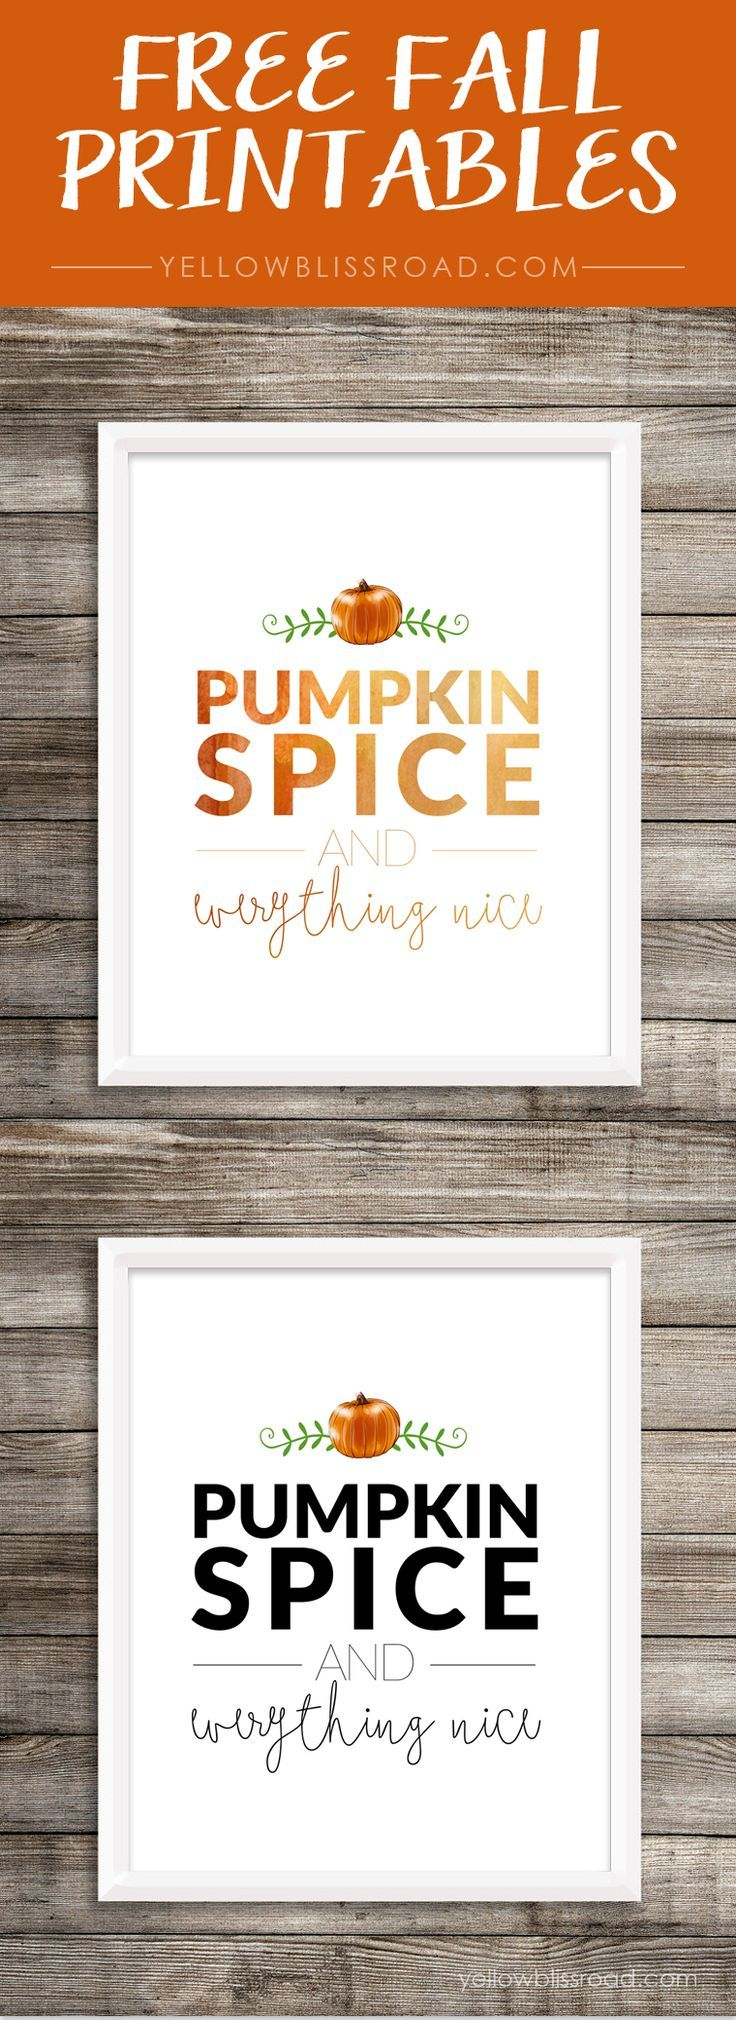 Pumpkin Spice and Everything Nice Printables for Fall